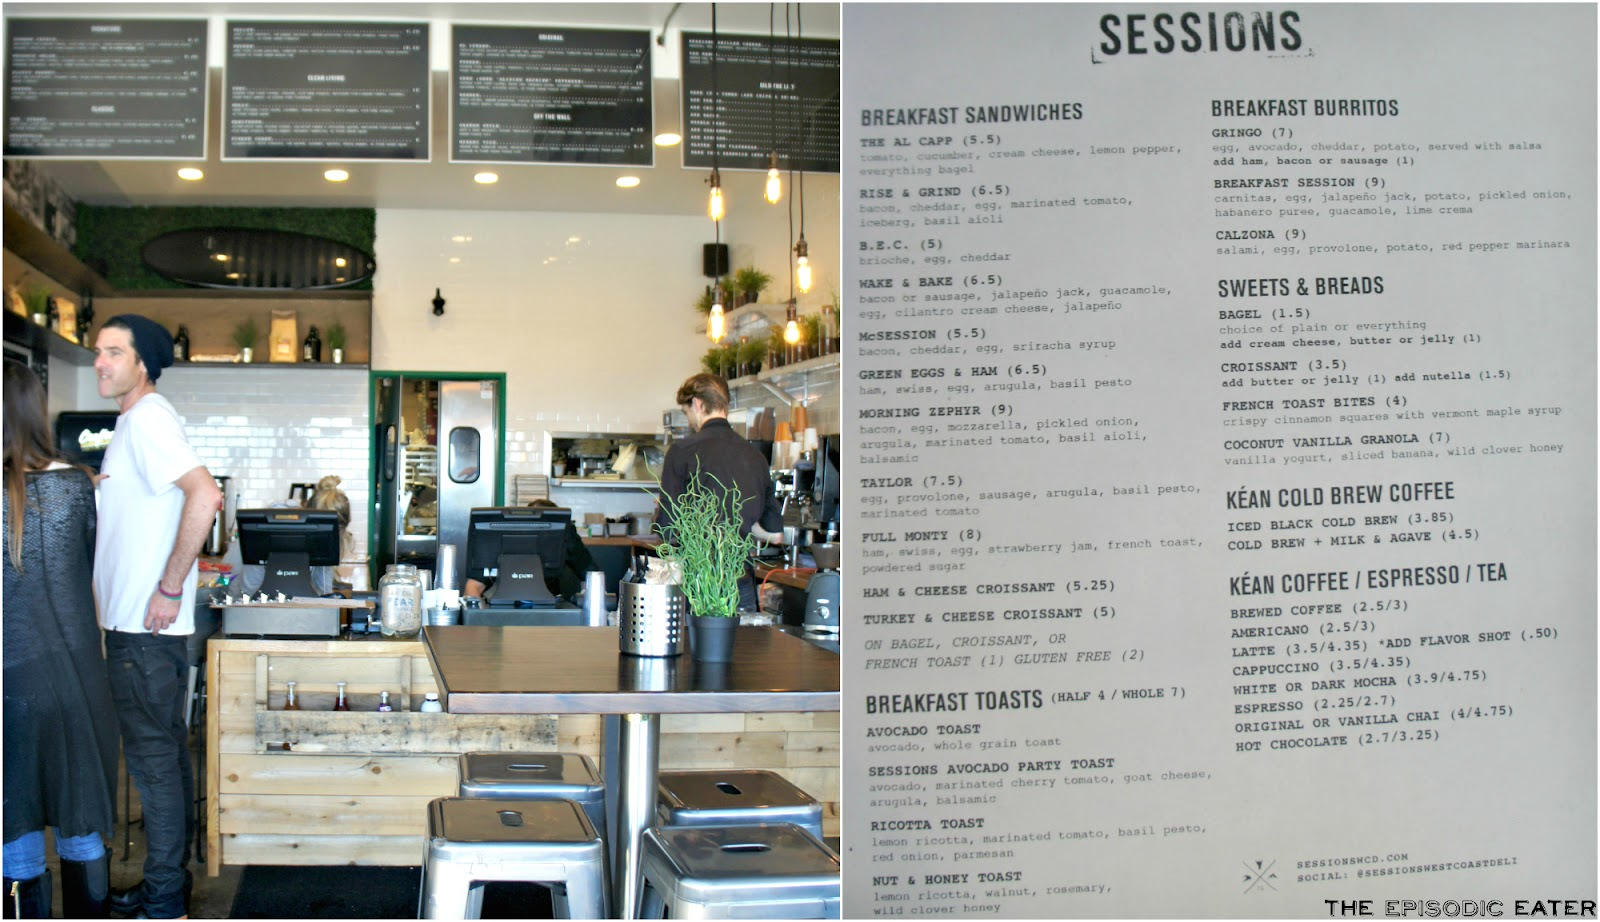 Sessions West Coast Deli (Huntington Beach, CA) - New Breakfast Menu! on The Episodic Eater